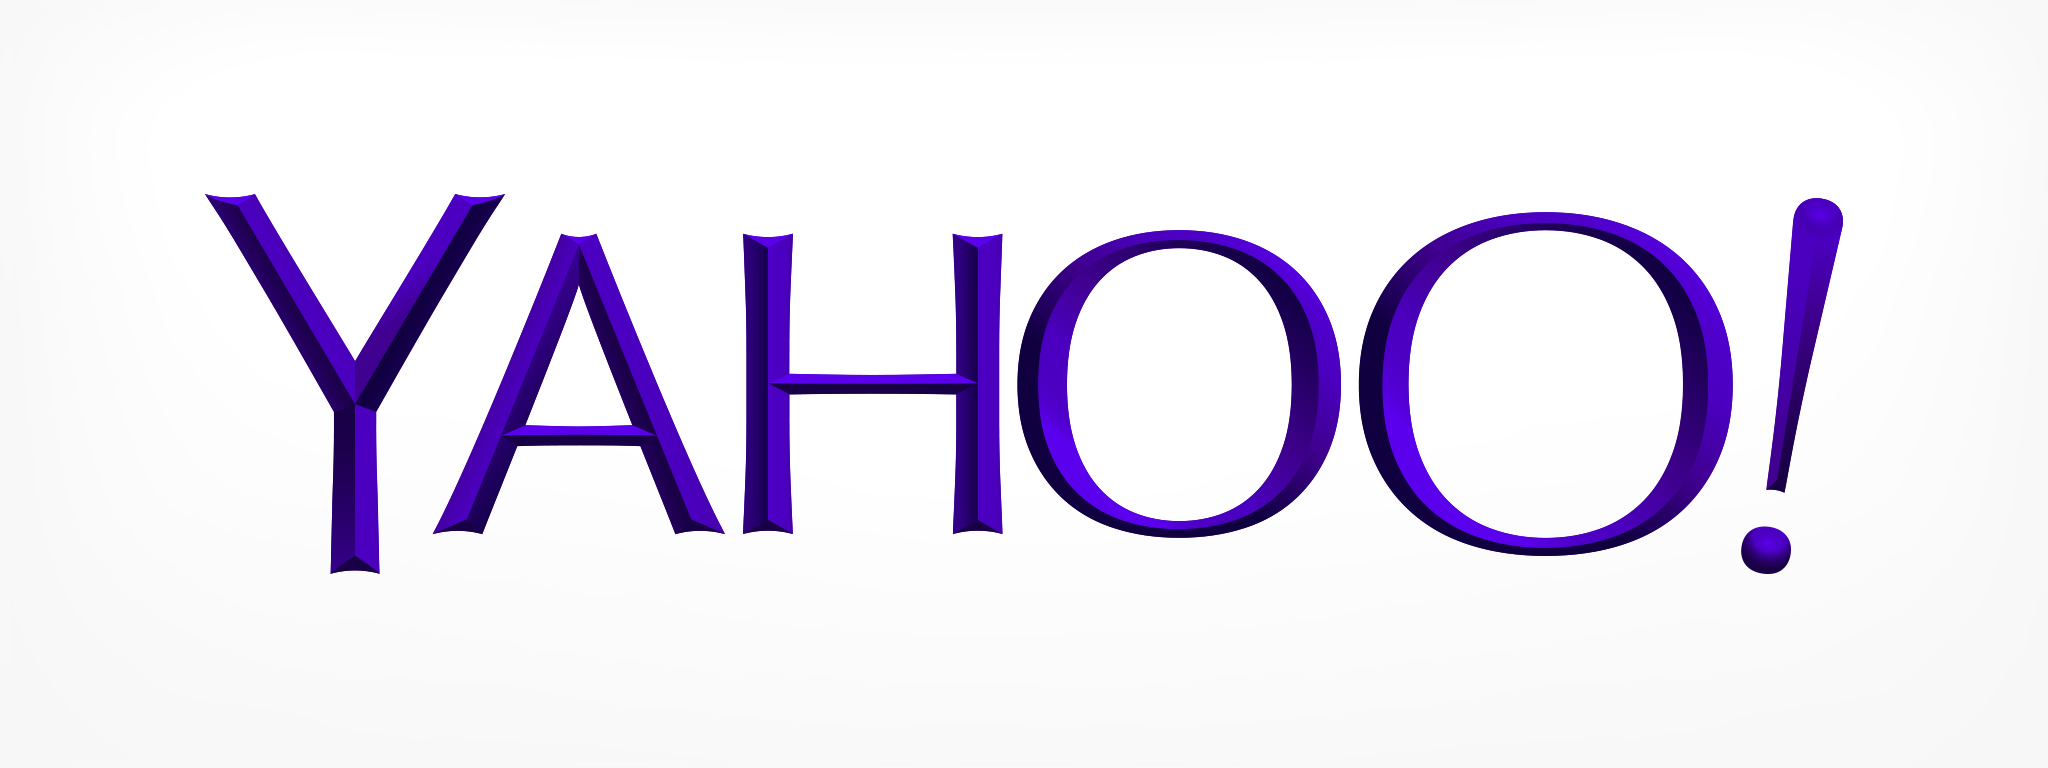 Amazing Yahoo Pictures & Backgrounds